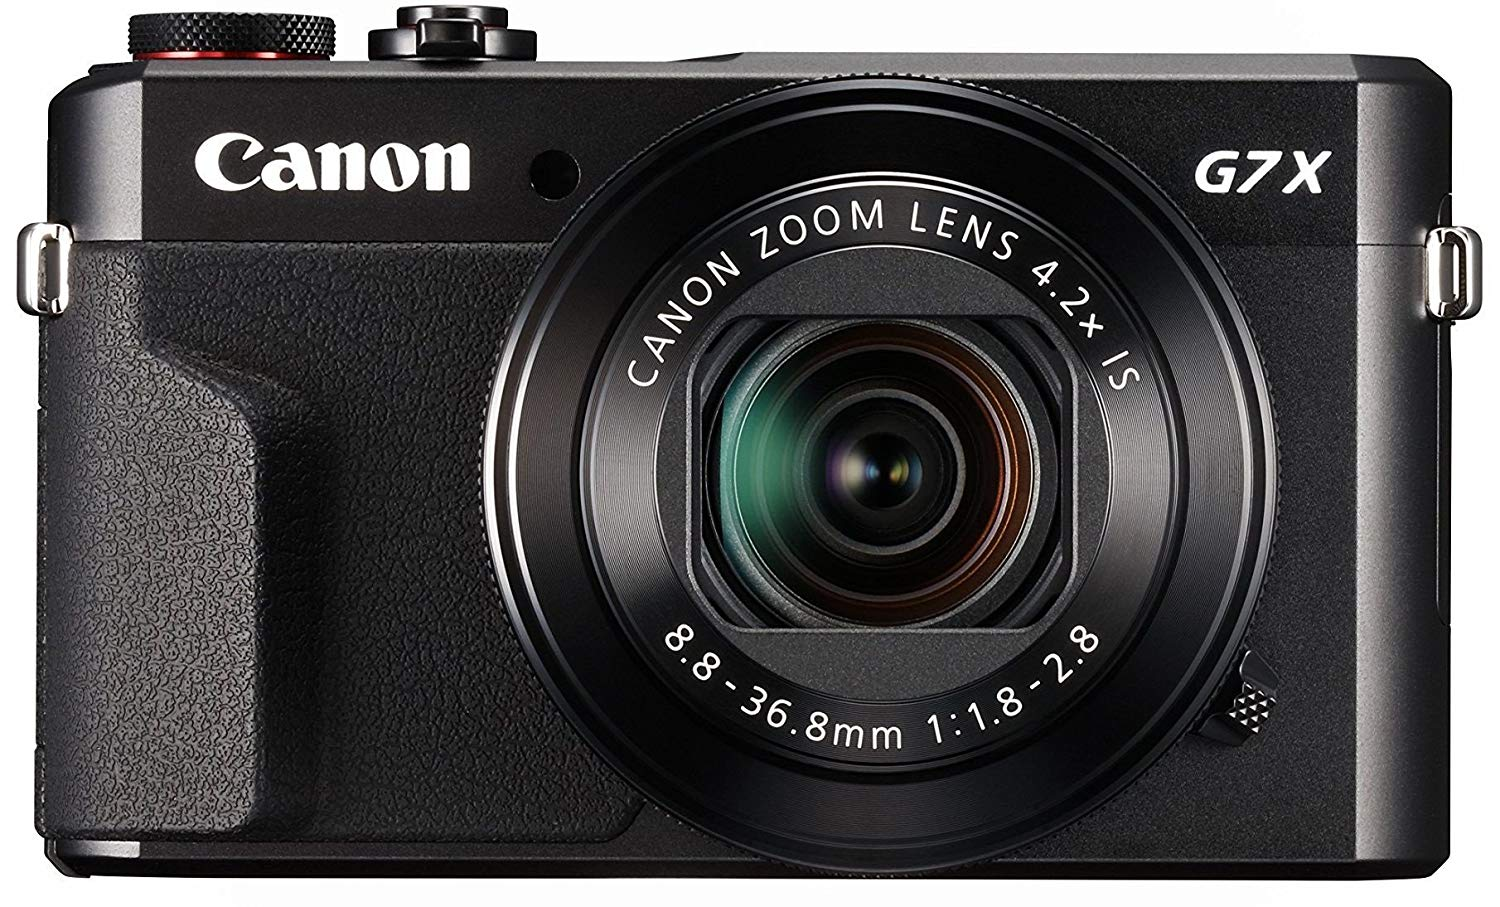 Canon PowerShot Digital Camera (G7 X Mark II)